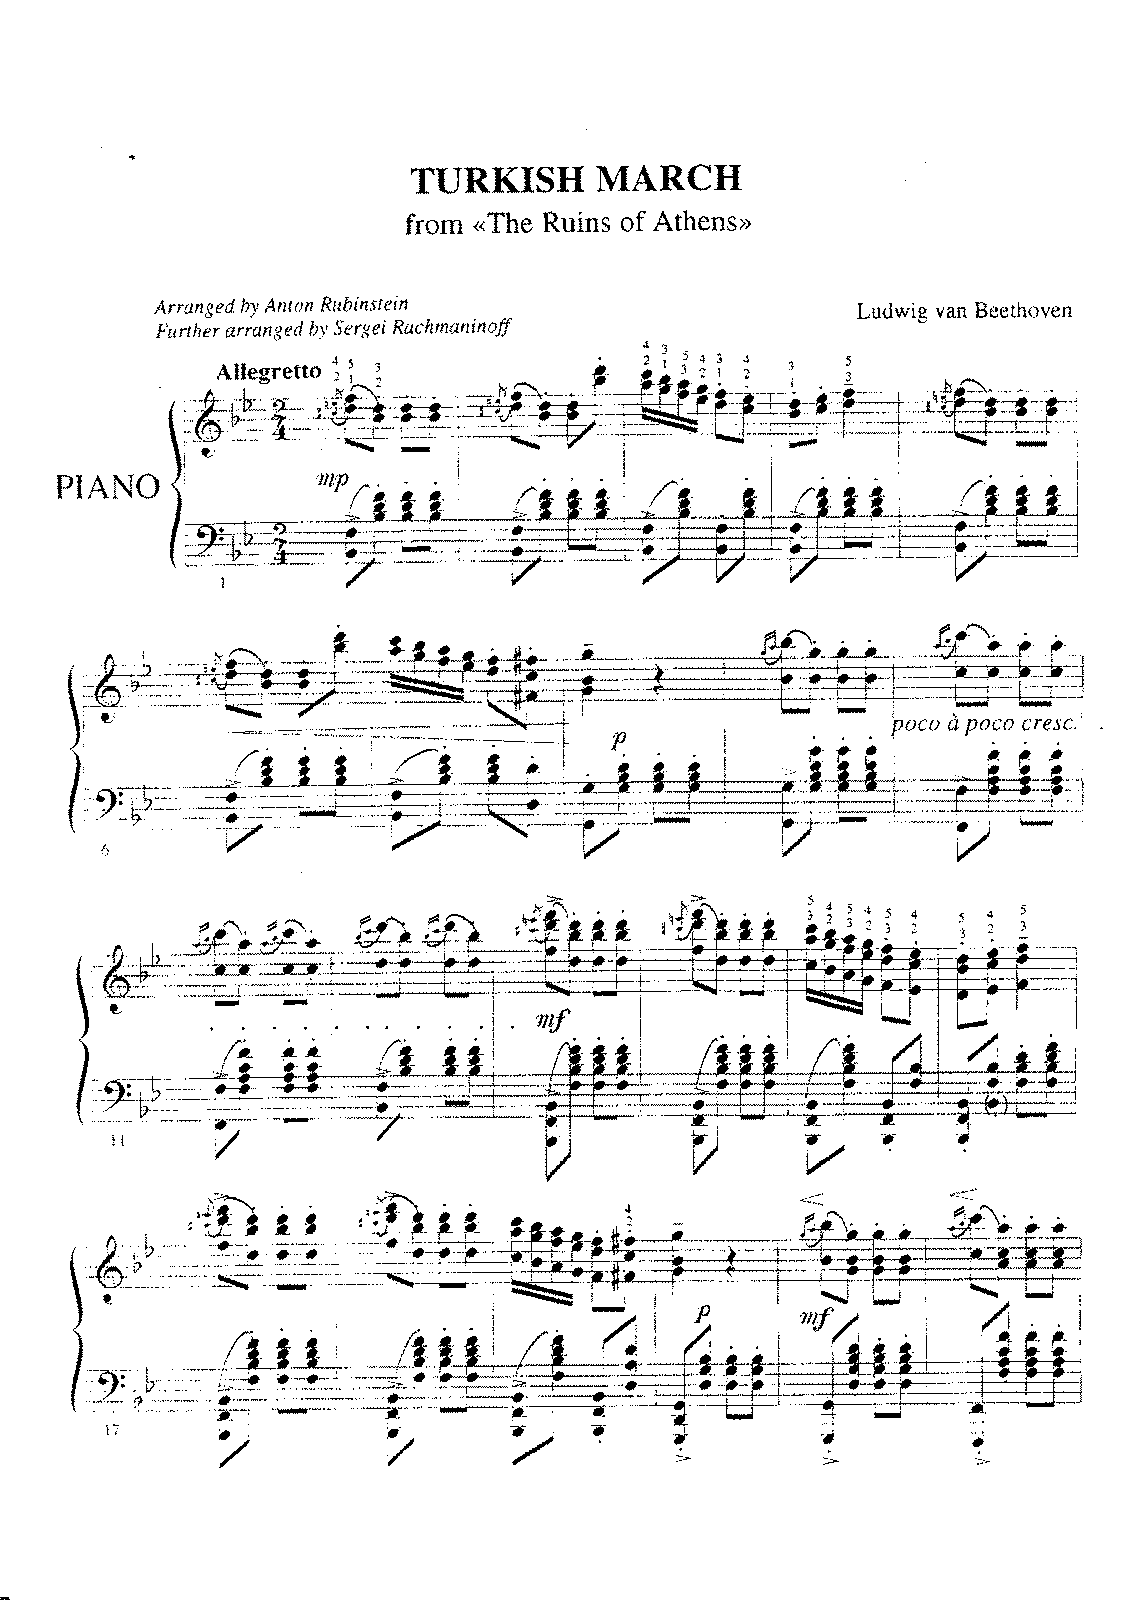 Beethoven-Rubinstein-Rachmaninoff-Turkish march.pdf